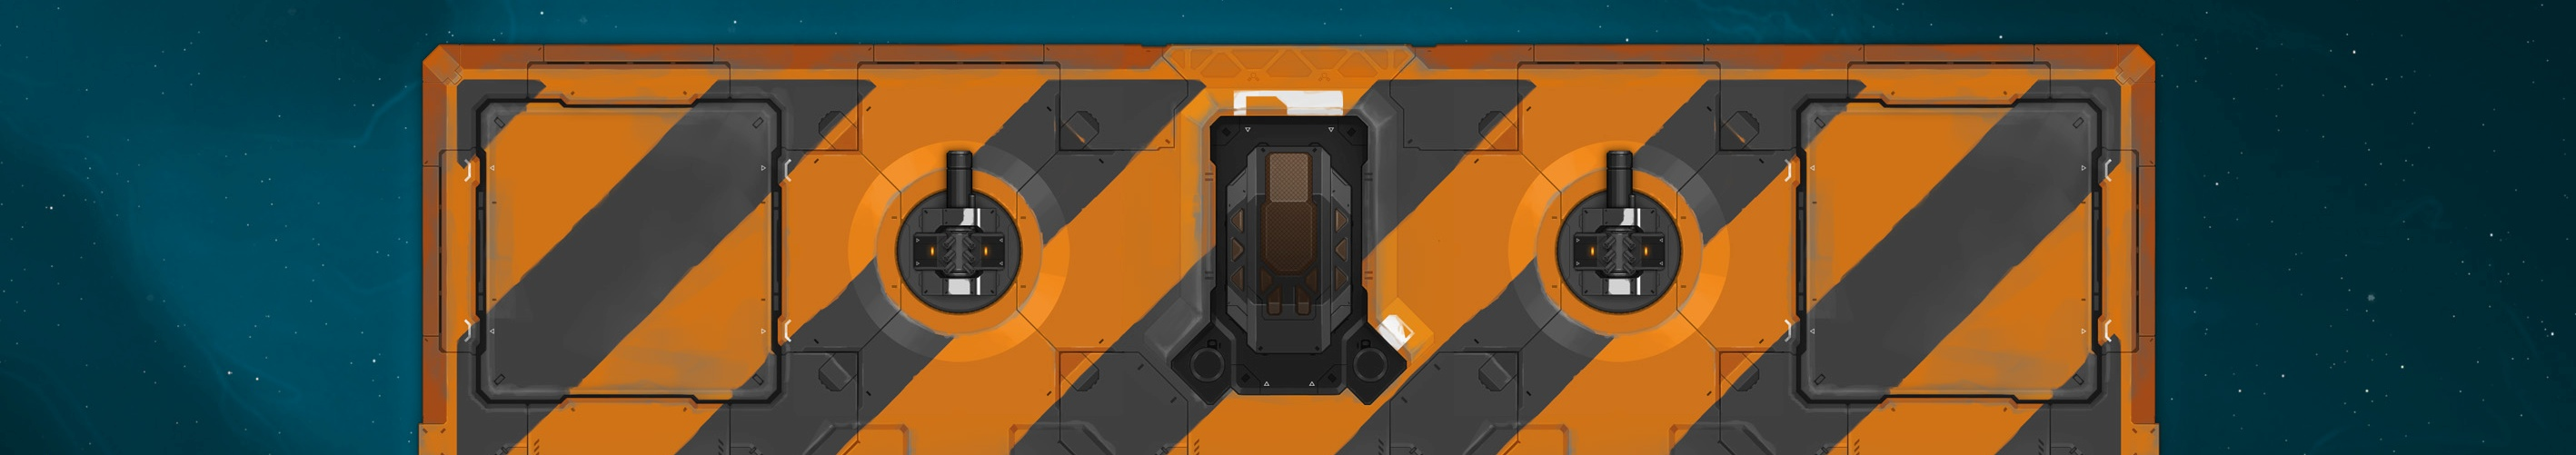 how to call spaceship in heat signature